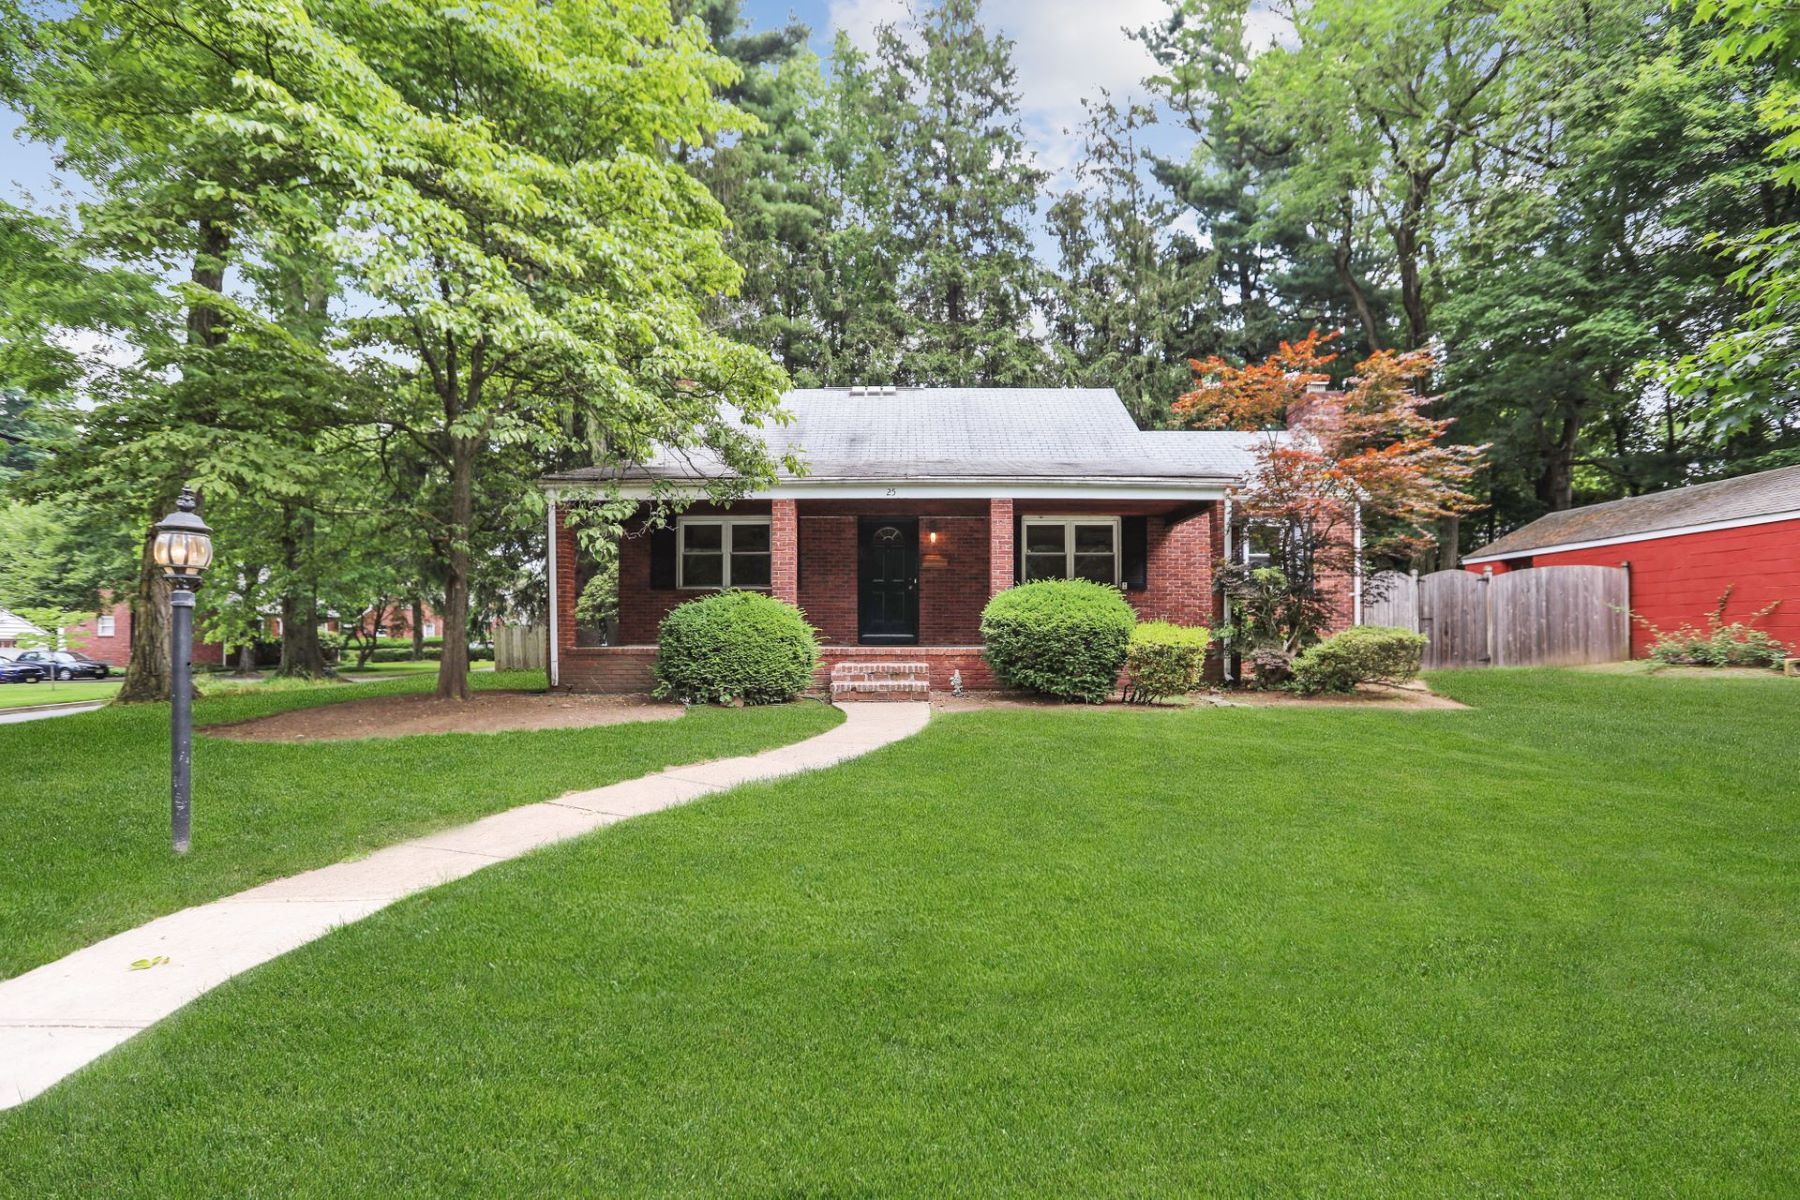 Single Family Homes for Sale at Great Curb Appeal 25 Poplar St Closter, New Jersey 07624 United States